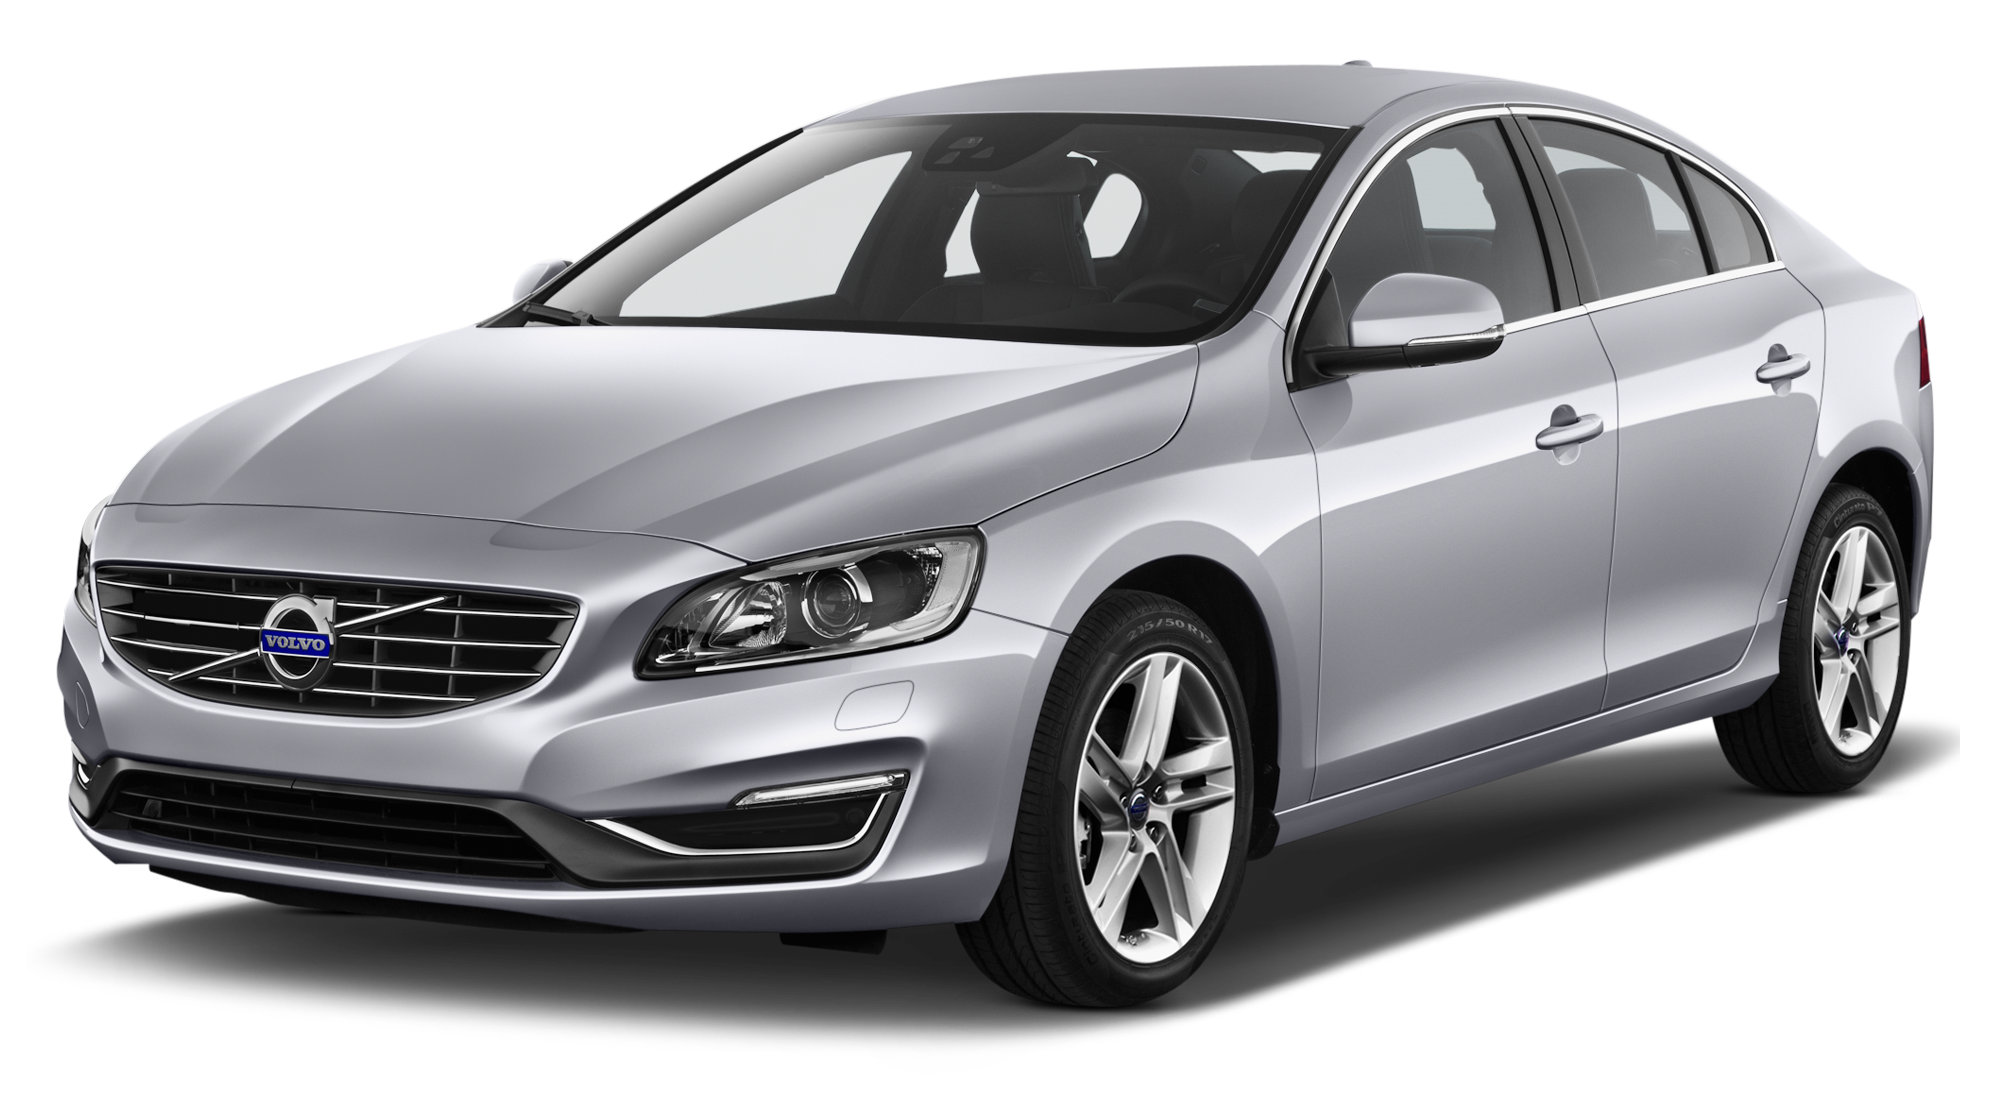 volvo s60 lease deals 2017 lamoureph blog. Black Bedroom Furniture Sets. Home Design Ideas